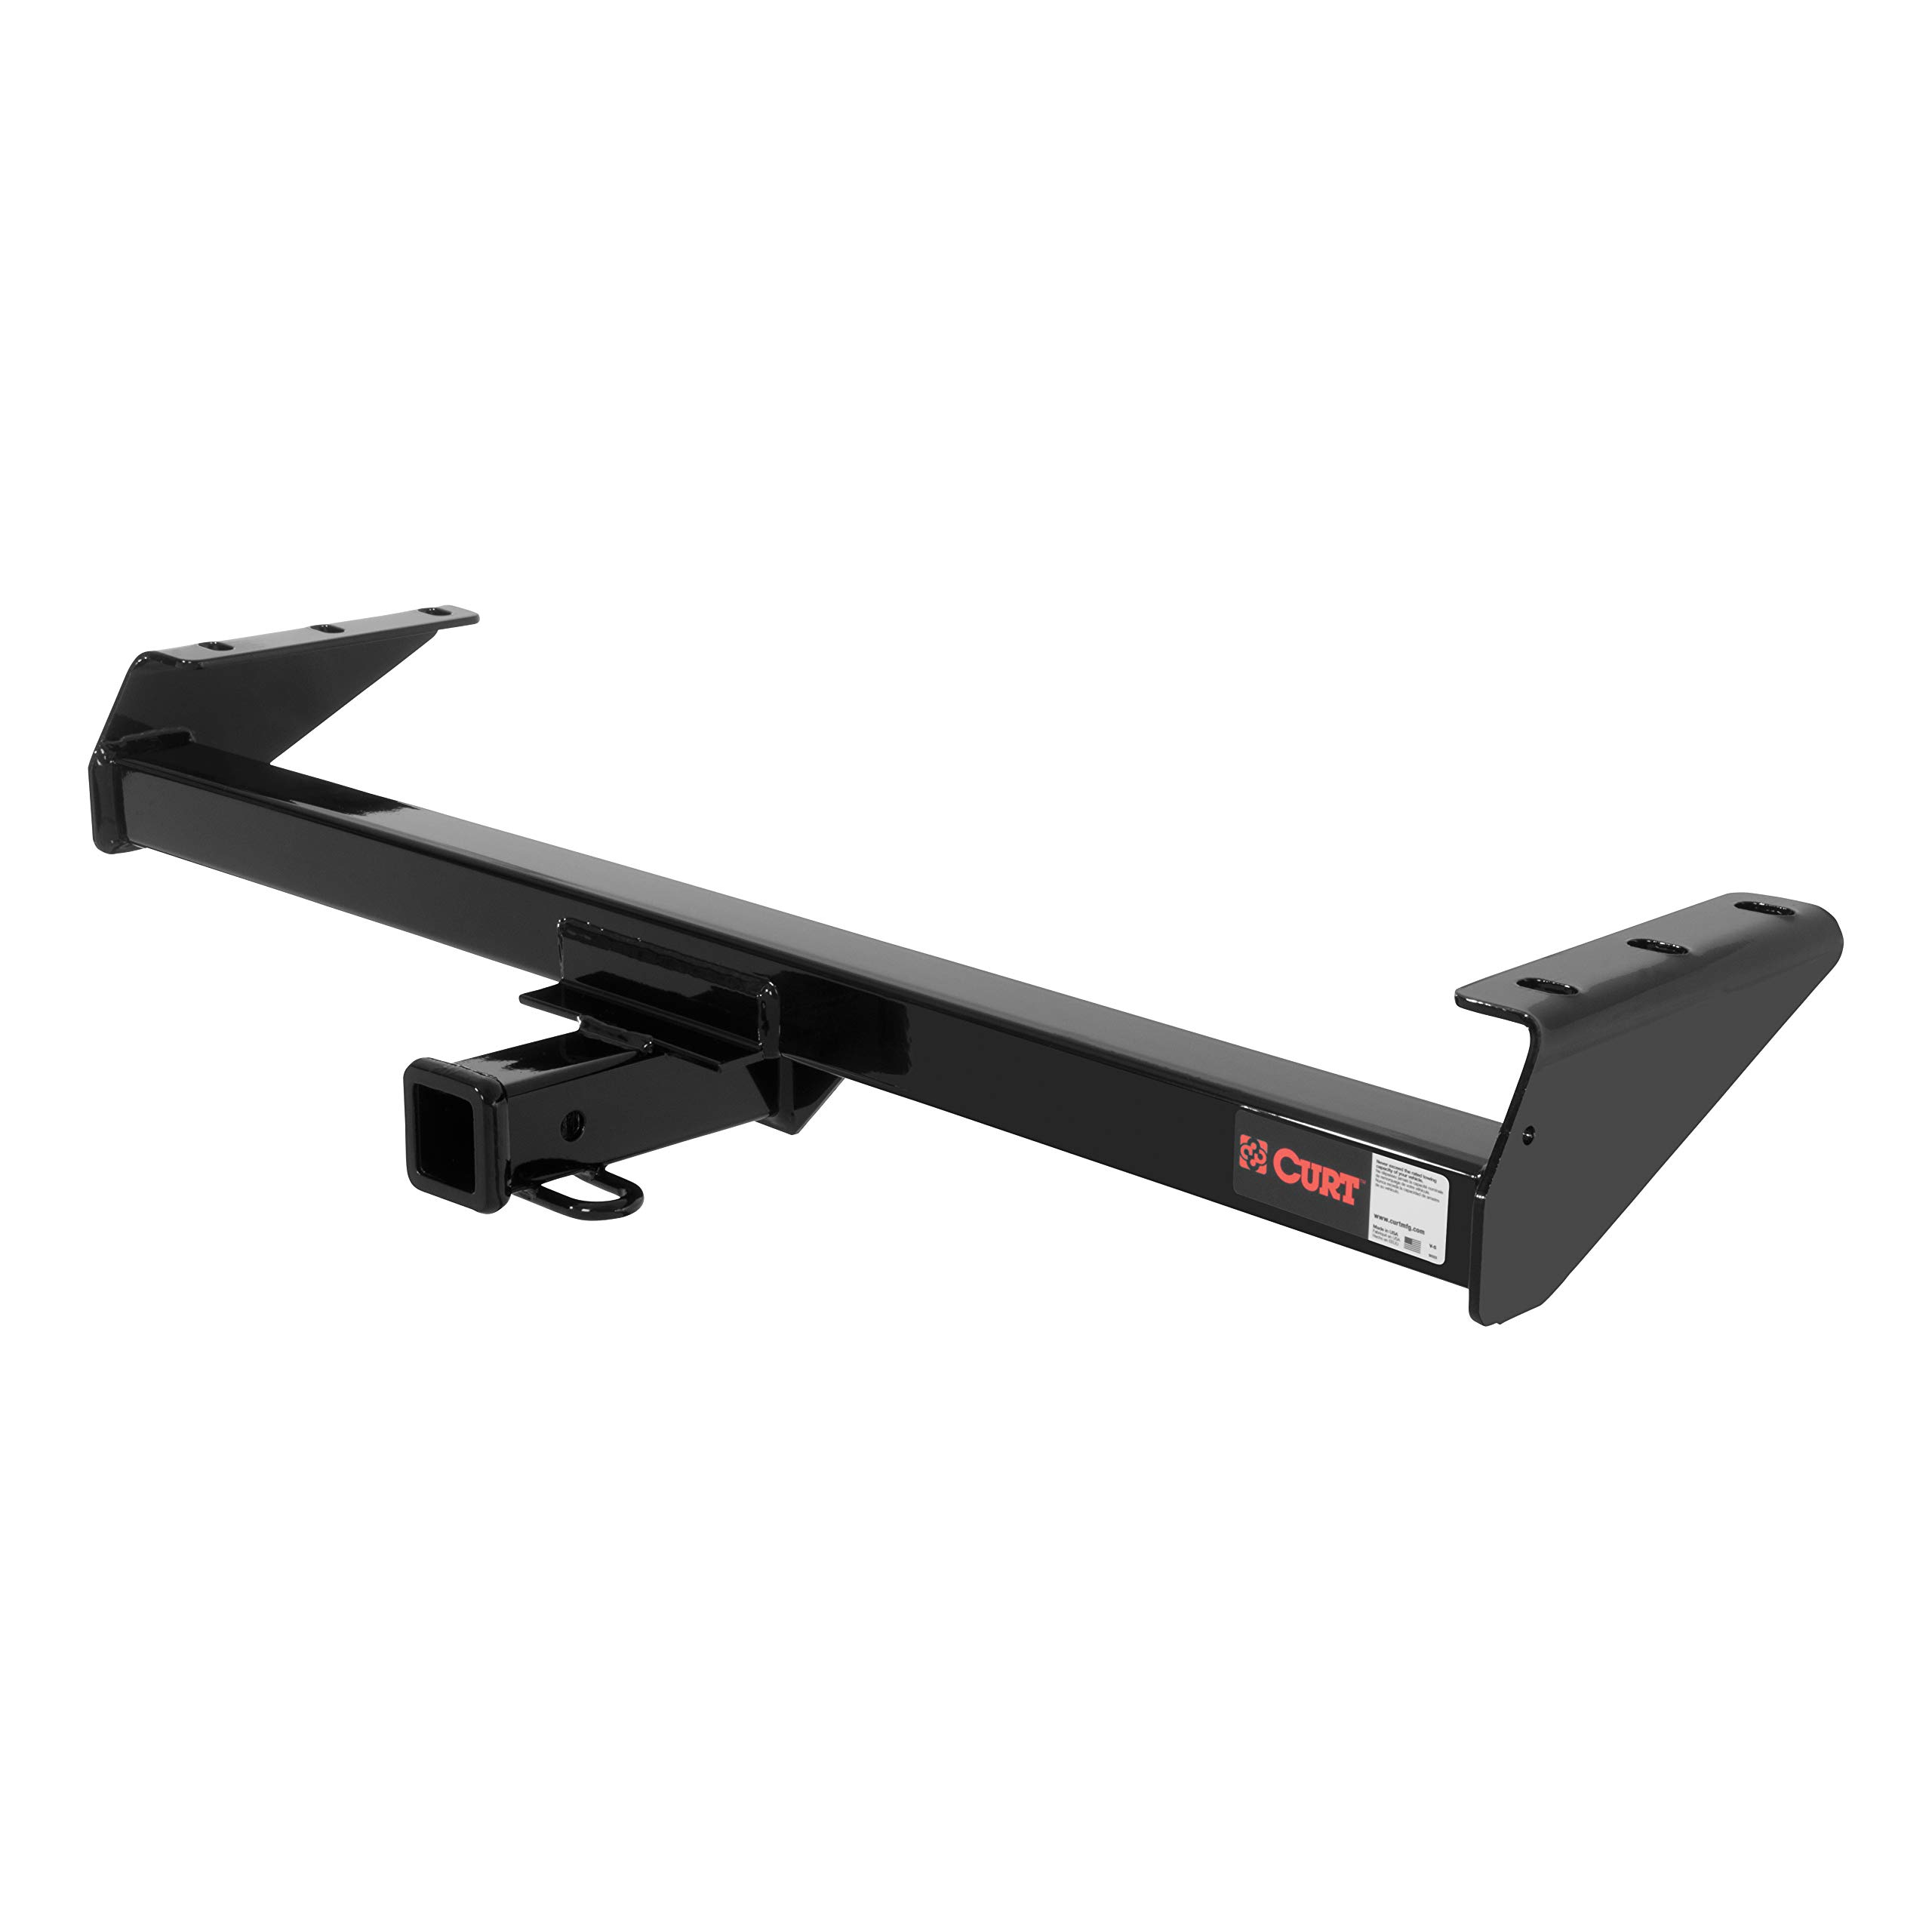 CURT 13241 Class 3 Trailer Hitch, 2-Inch Receiver for Select Nissan Frontier and Suzuki Equator by CURT